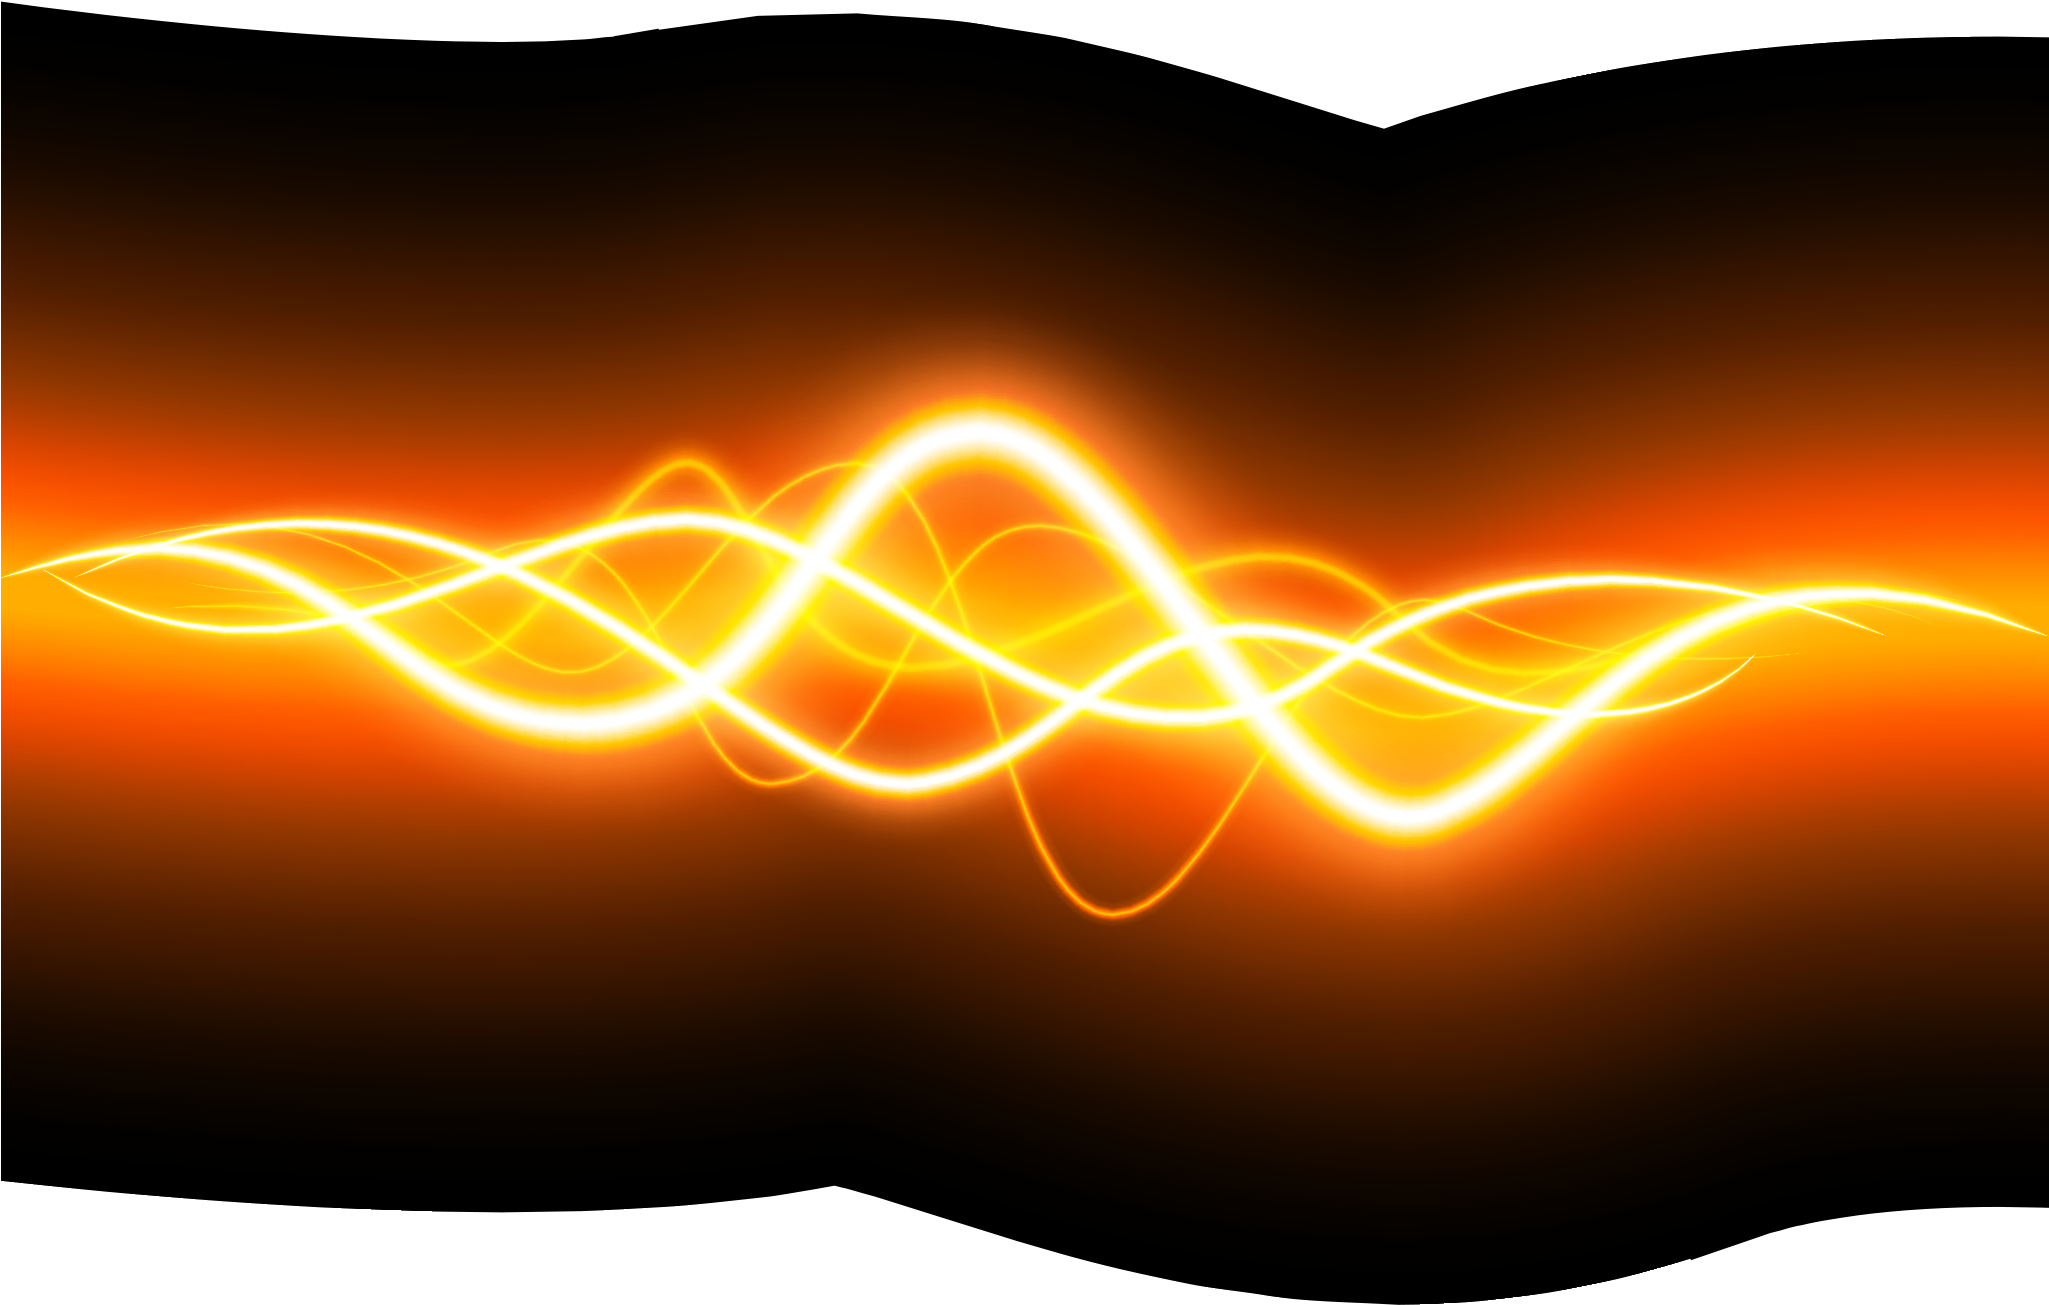 HD Glowing Lights Png Transparent Background.